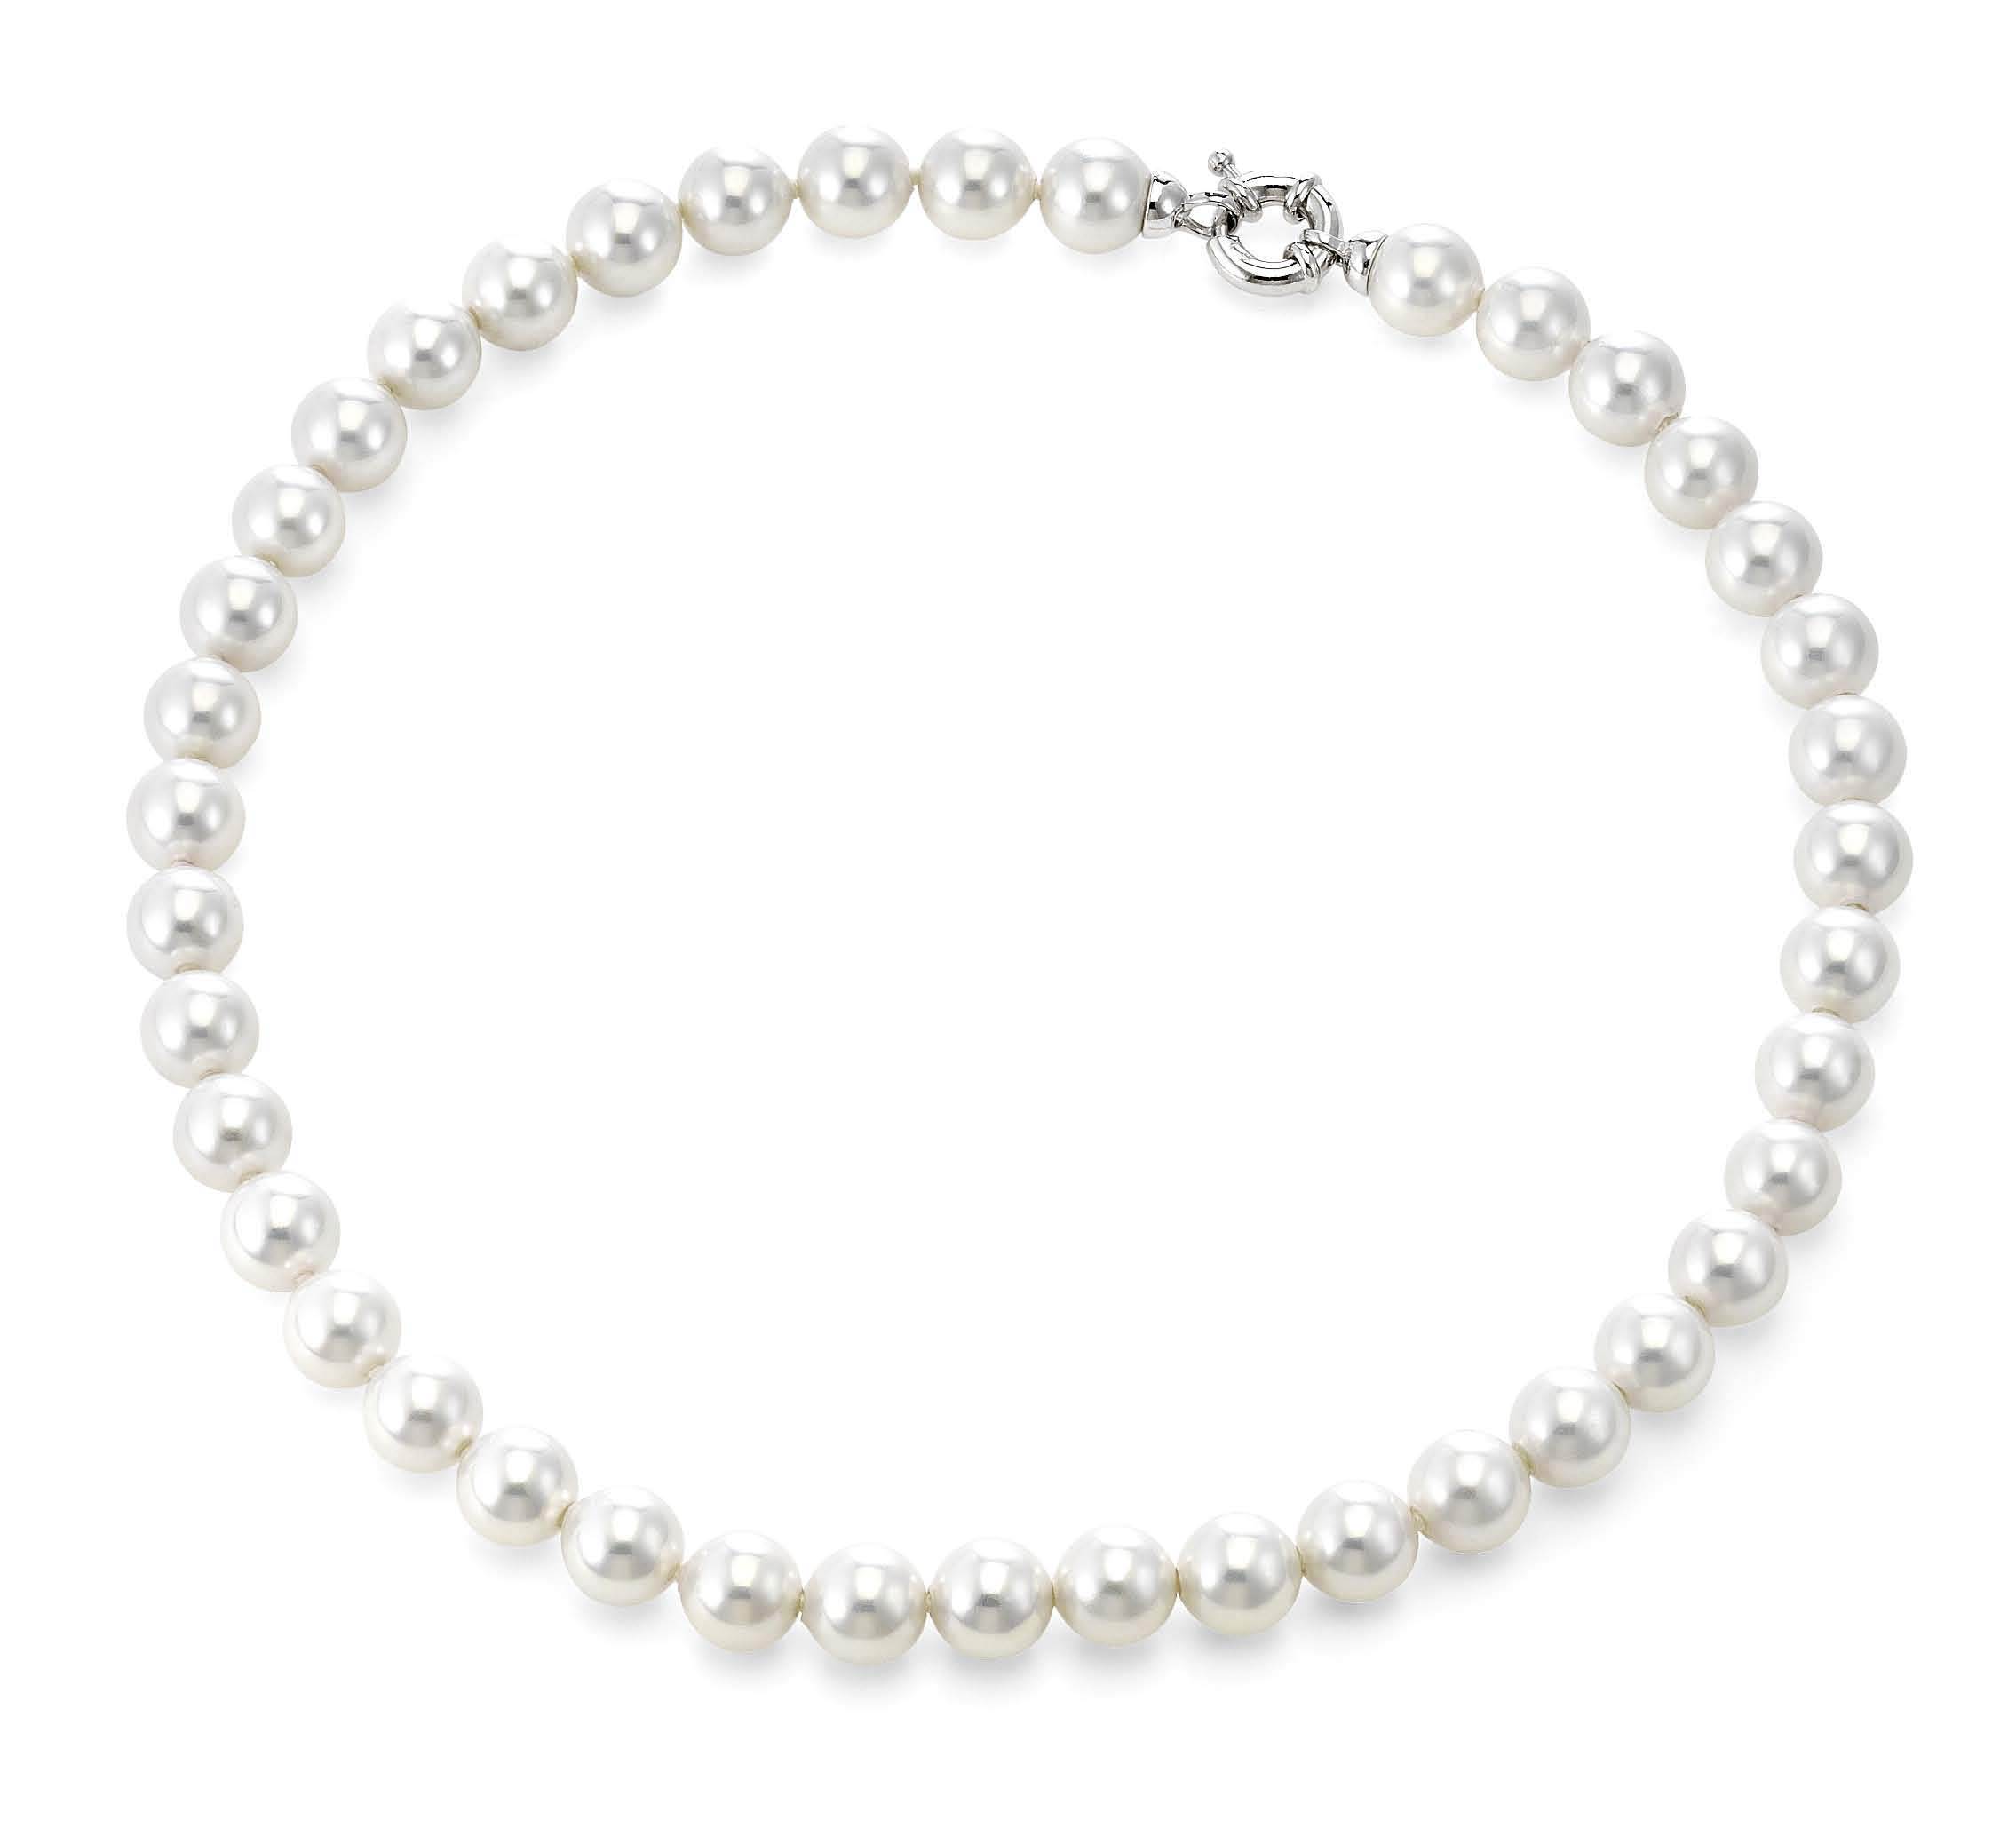 Joia De Majorca, 10mm Man-Made White Pearl Necklace with Rhodium Euro Clasp, 18 inch, Organic Man-Made Strand of Pearls from Majorca Spain by JOIA DE MAJORCA